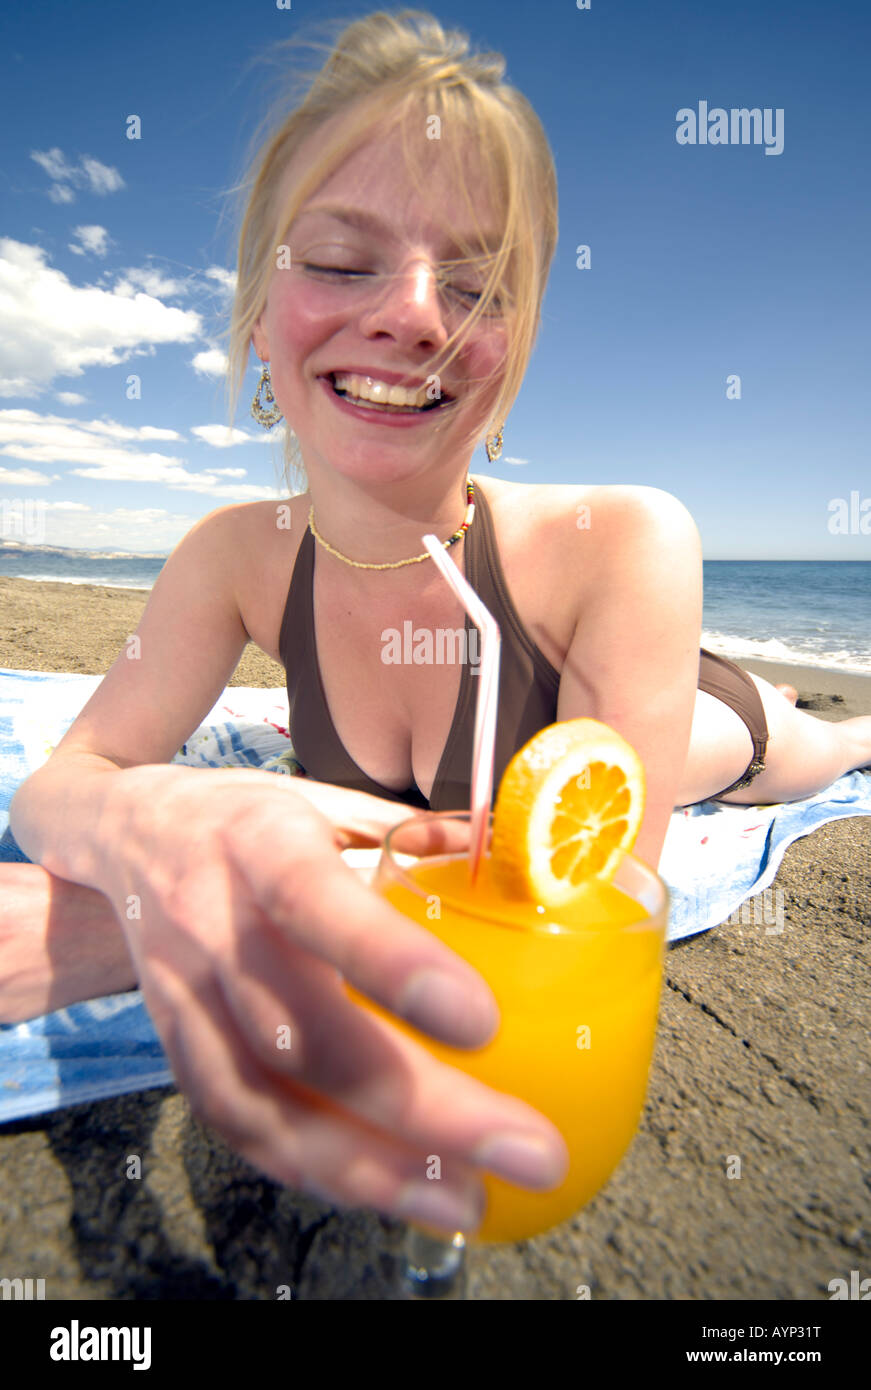 87374306ee2f93 Beautiful young woman with drink laughing on Fuengirola beach, Costa del Sol,  Spain